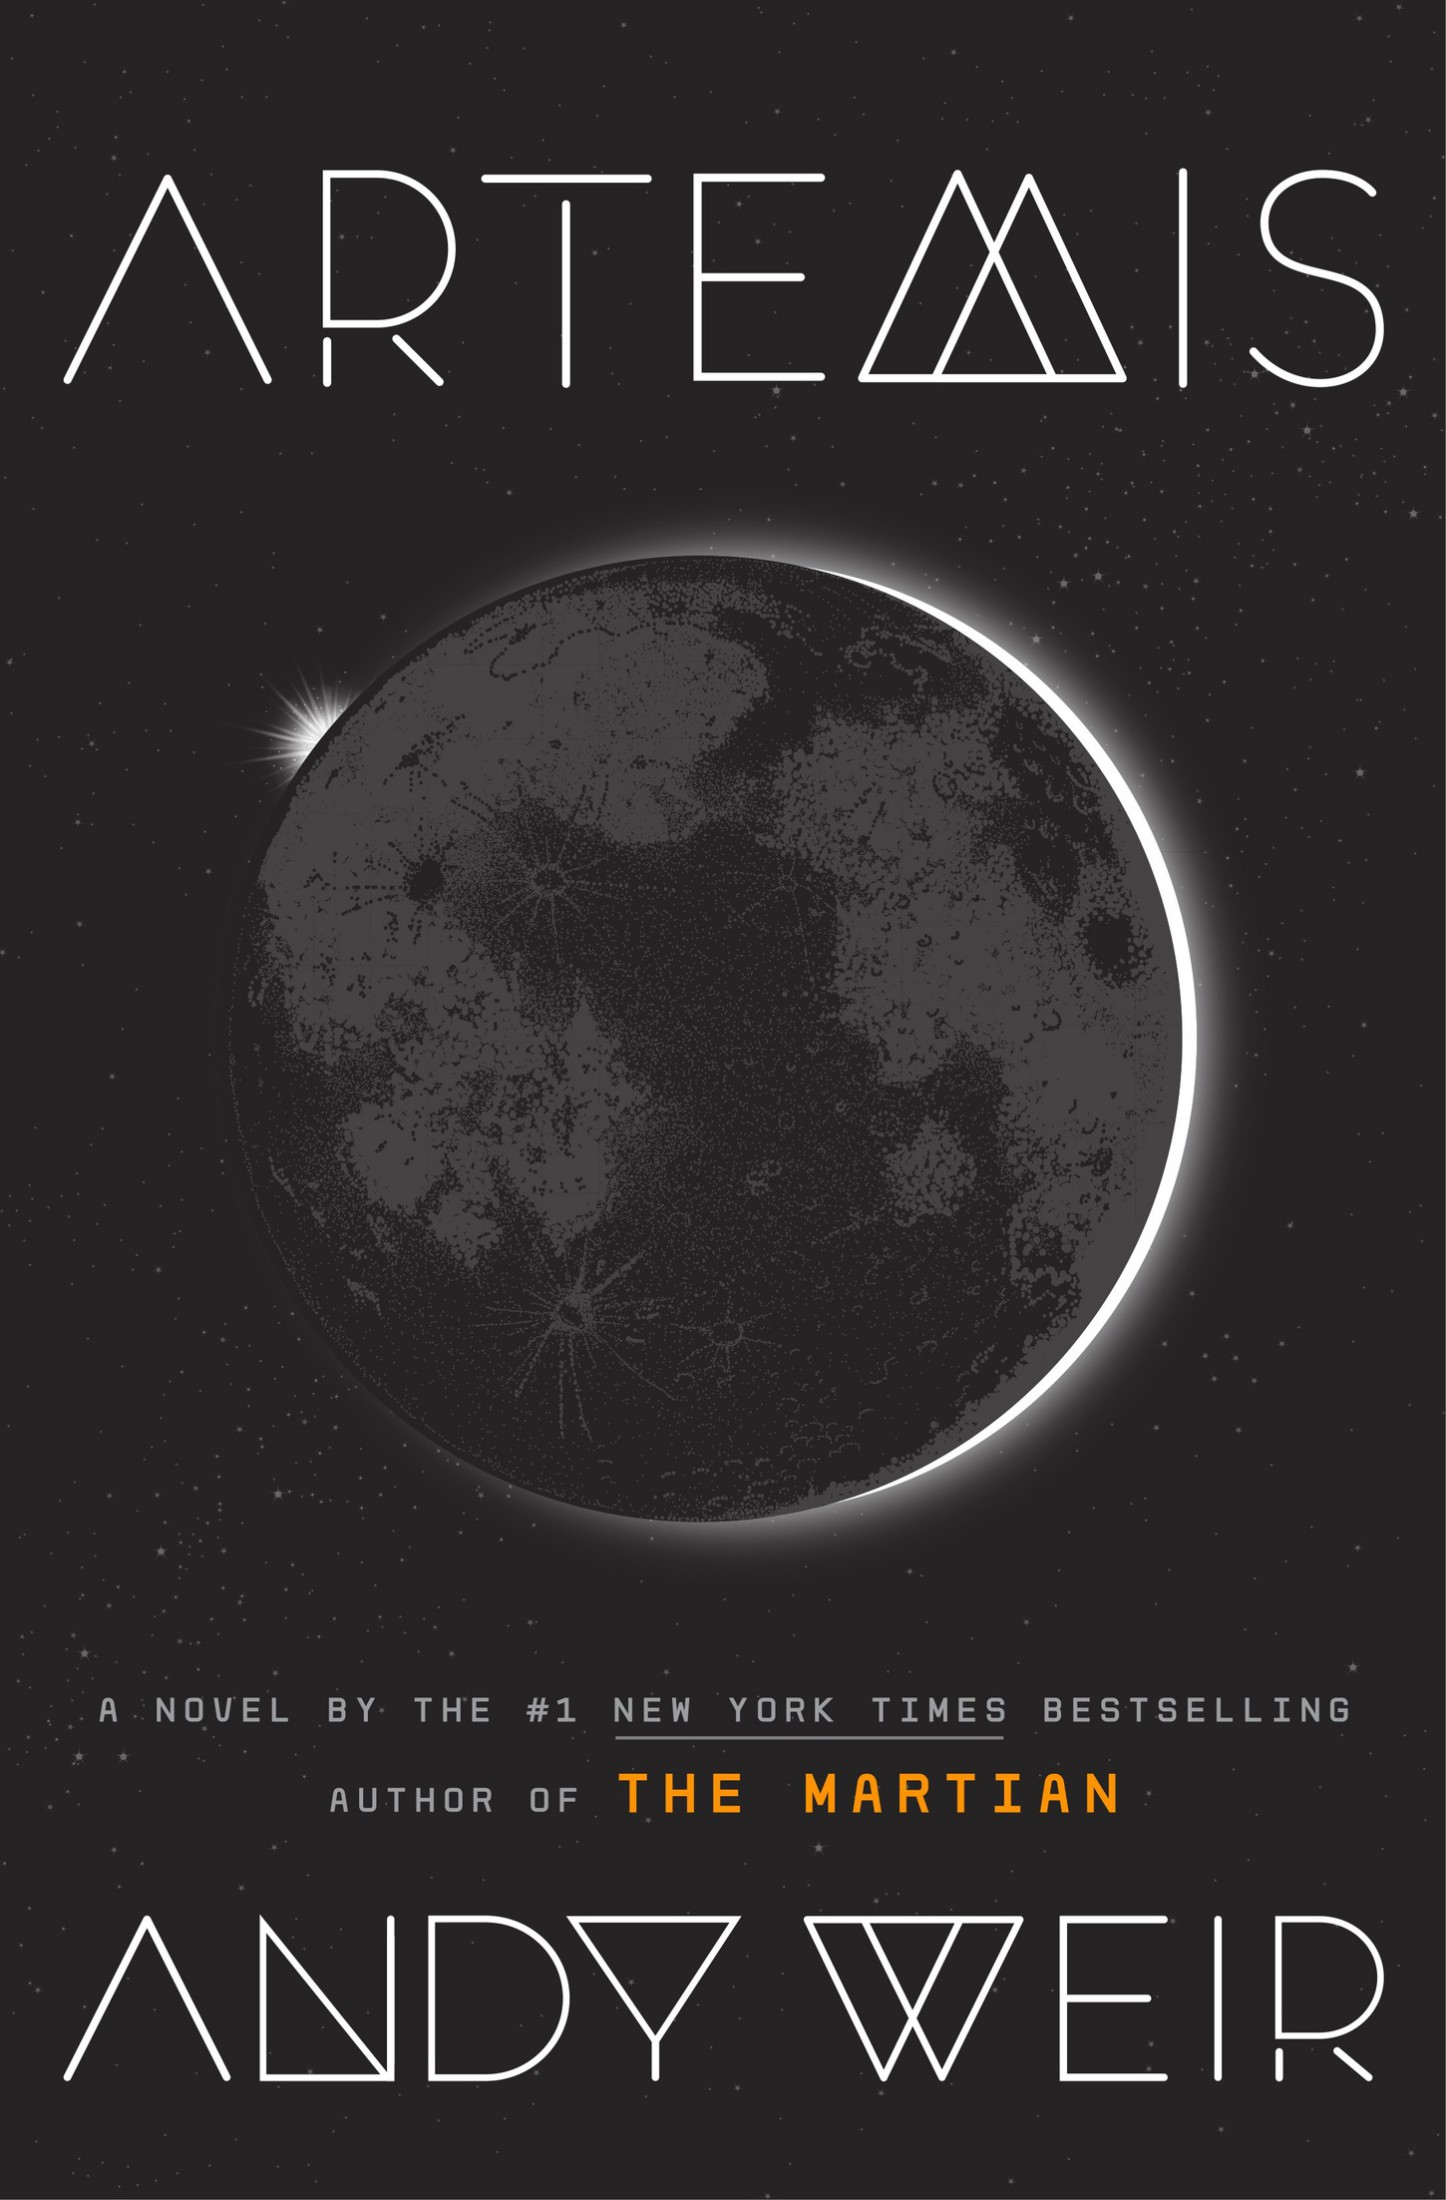 Artemis: A Novel - Andy Weir [kindle] [mobi]